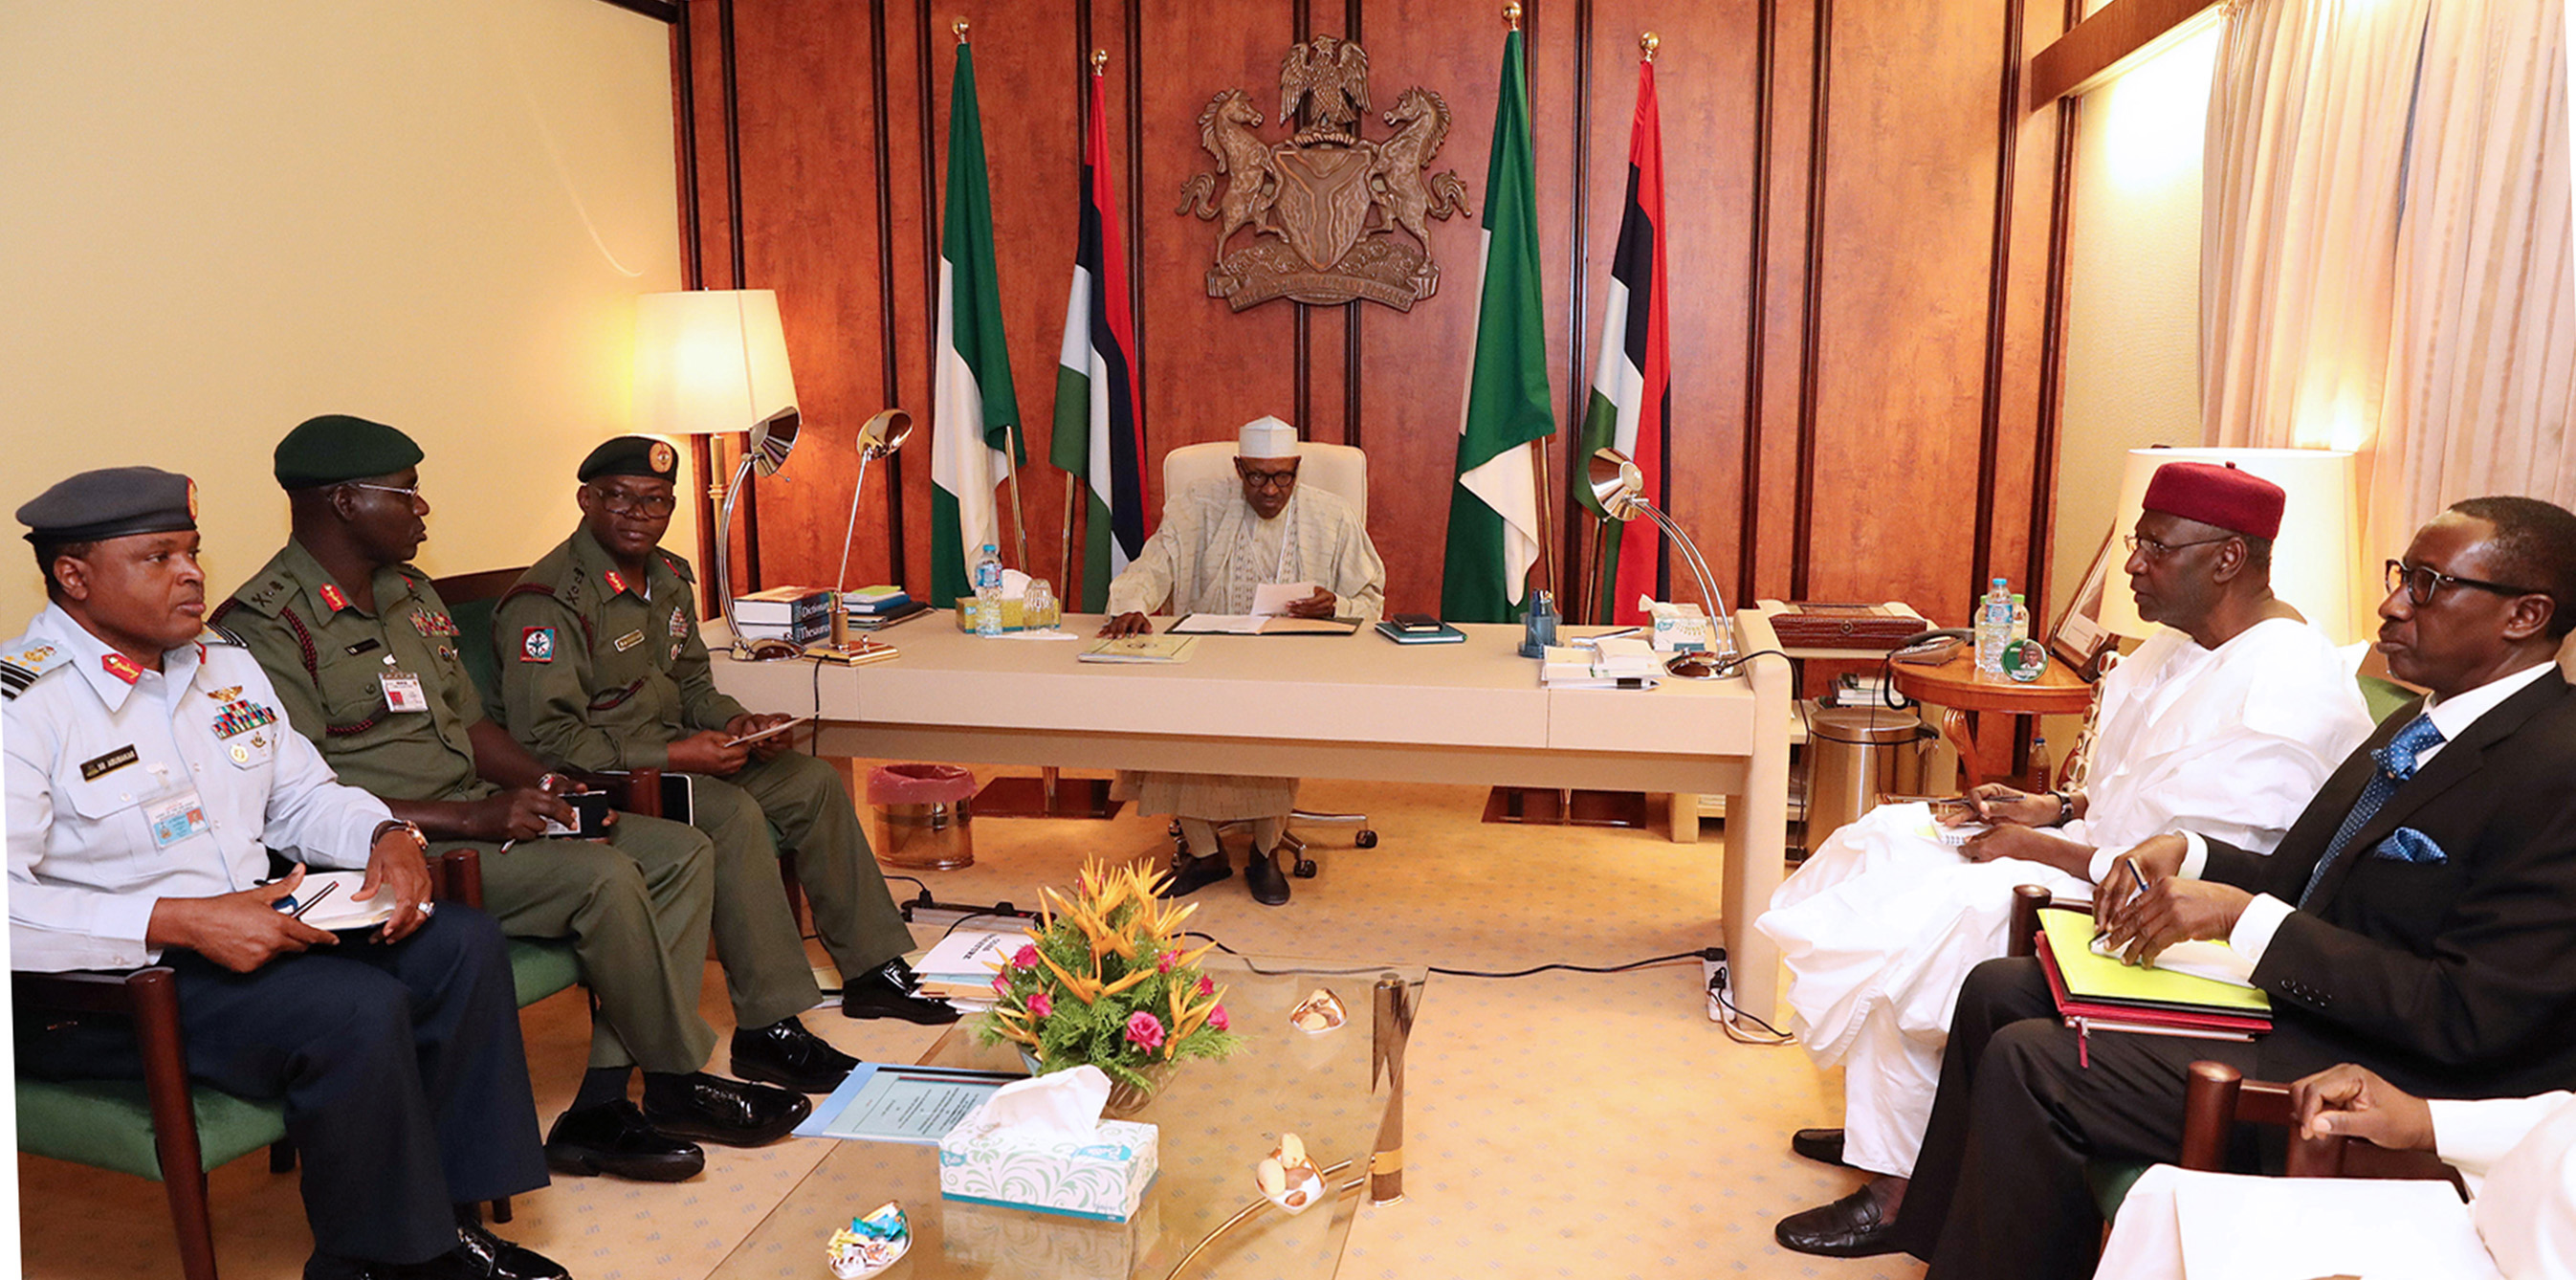 PRESIDENT BUHARI PRESIDES OVER SECURITY MEETING. 2B. President Muhammadu Buhari presides over Security Meeting with service chiefs, Chief of Defence Staff, Lt General Abayomi Olonisakin, Chief of Army Staff, Lt General TY Buratai, Chief of Air Staff, Air Marshal Abubakar Sadique, National Security Adviser to the President NSA, Major General Babagana Monguno, Chief of Staff, Mallam Abba Kyari during scurity Meeting at the State House, Abuja. PHOTO; SUNDAY AGHAEZE/STATE HOUSE. AUG 22 2017